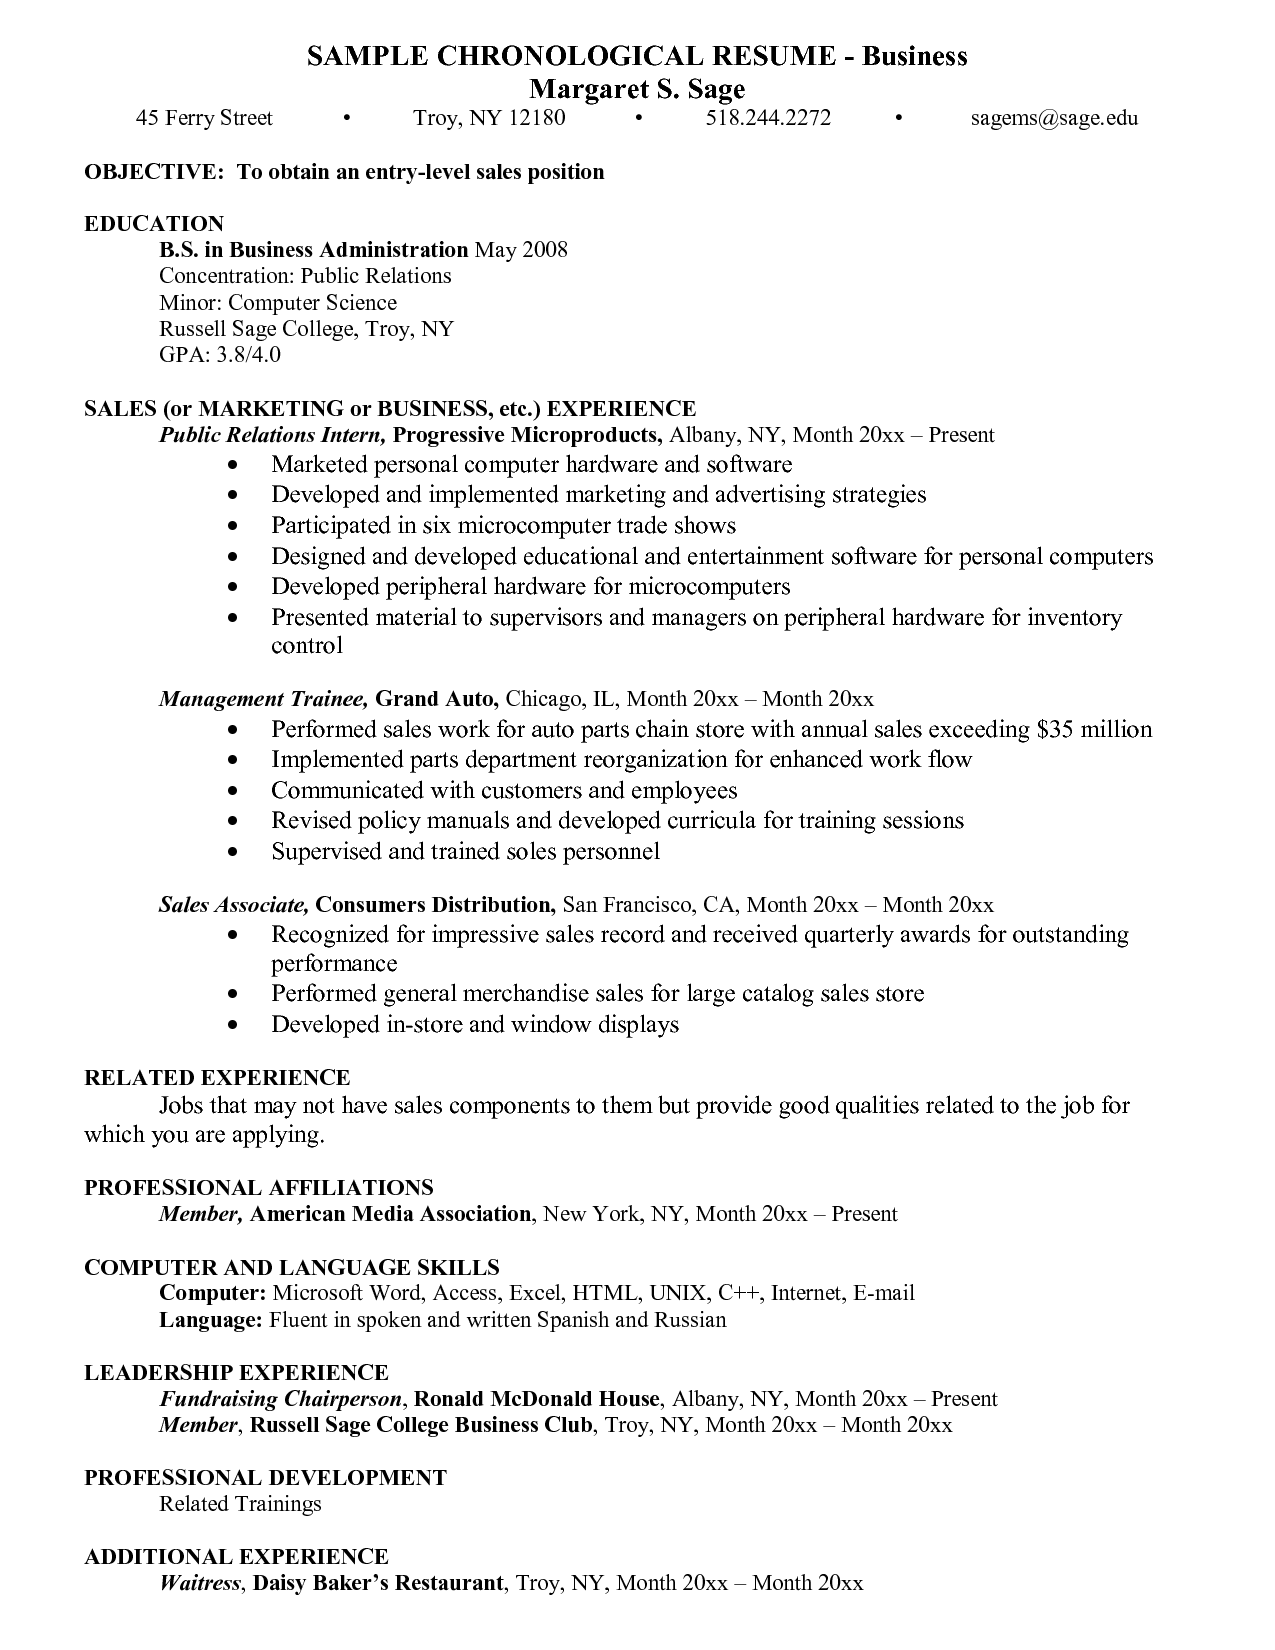 Free Chronological Resume Template - http://www.resumecareer.info ...